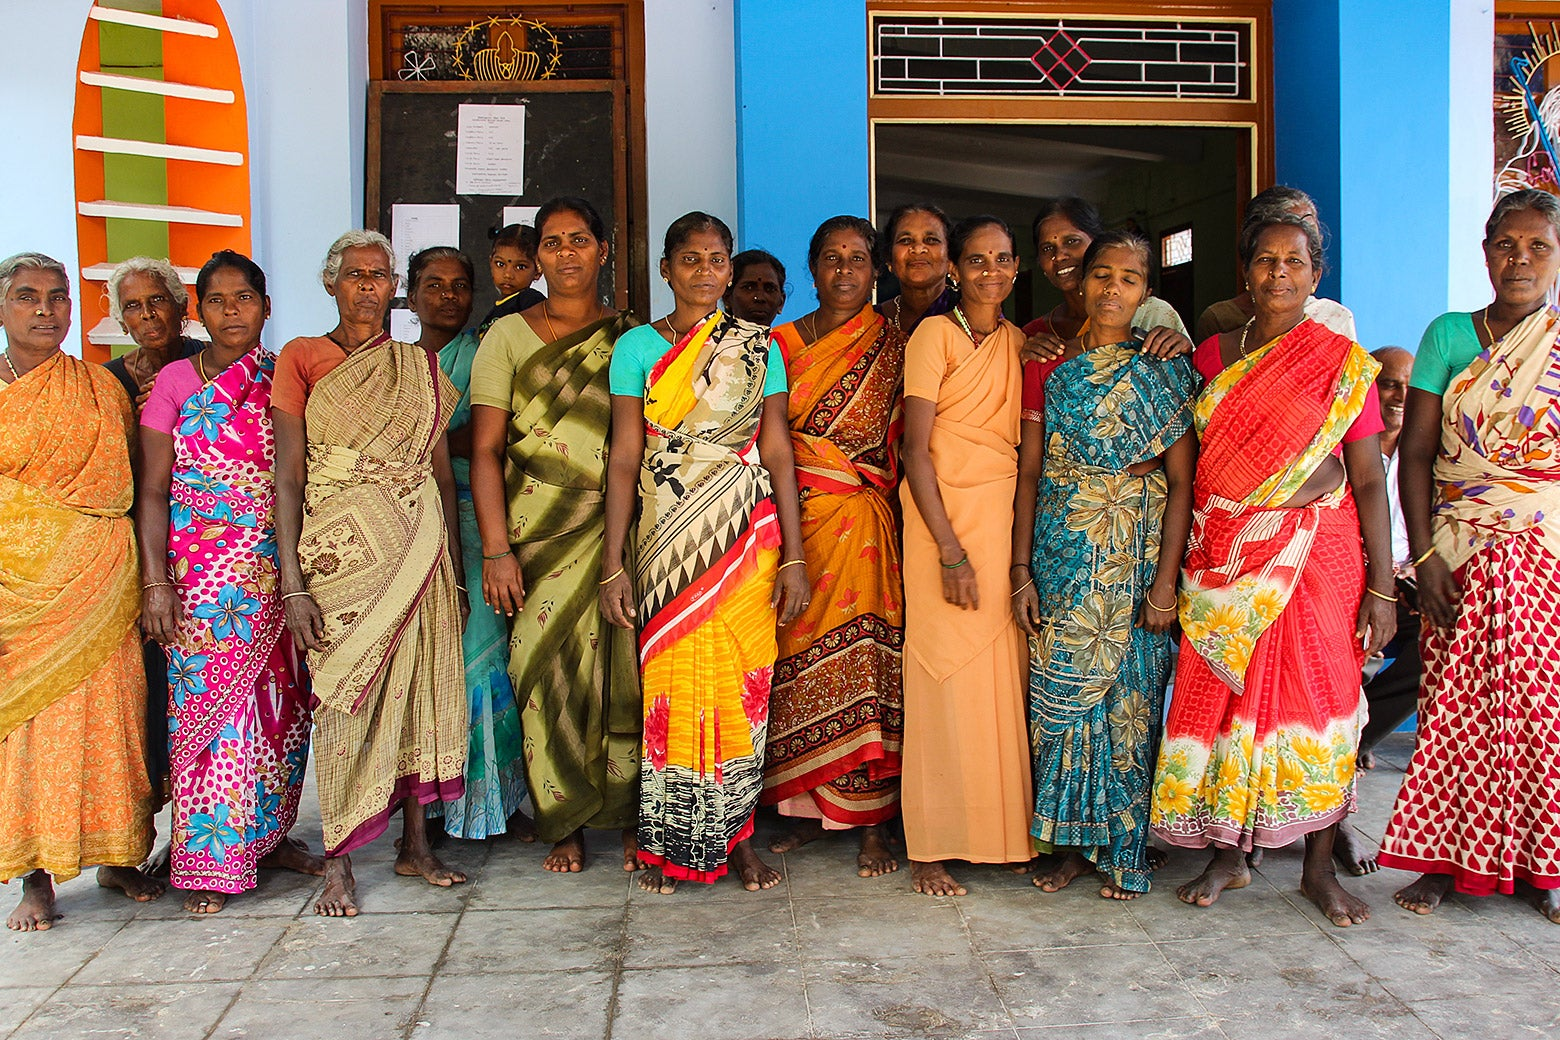 Farmers gather in Karaikal, a port town off the east coast of India.